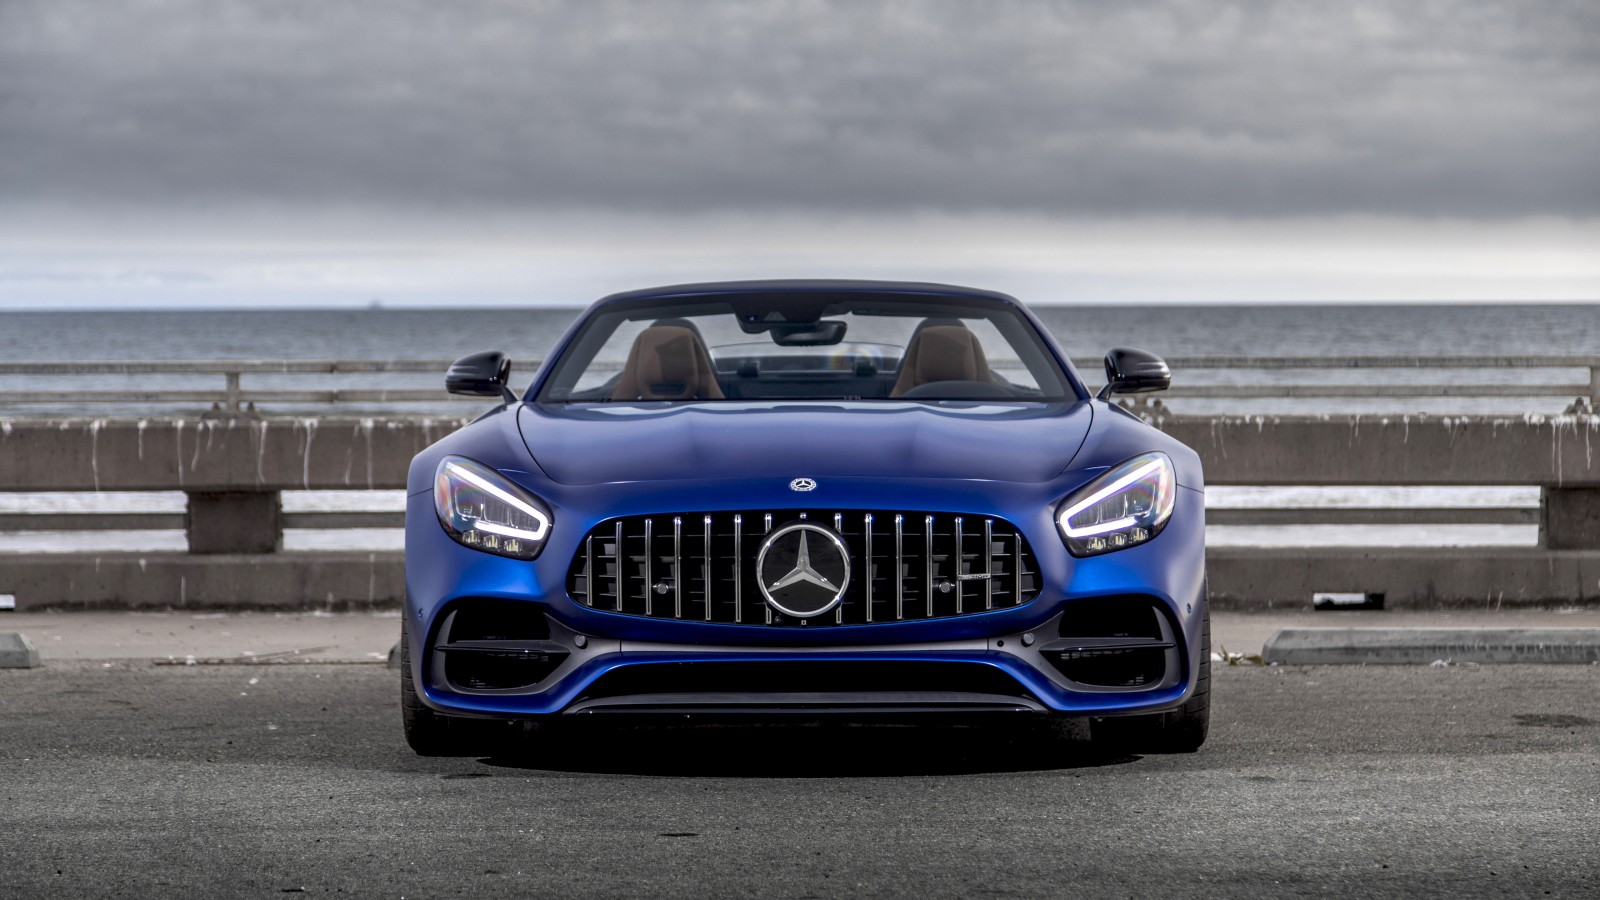 2020 Mercedes-AMG GT C Roadster 4K Wallpaper | HD Car ...